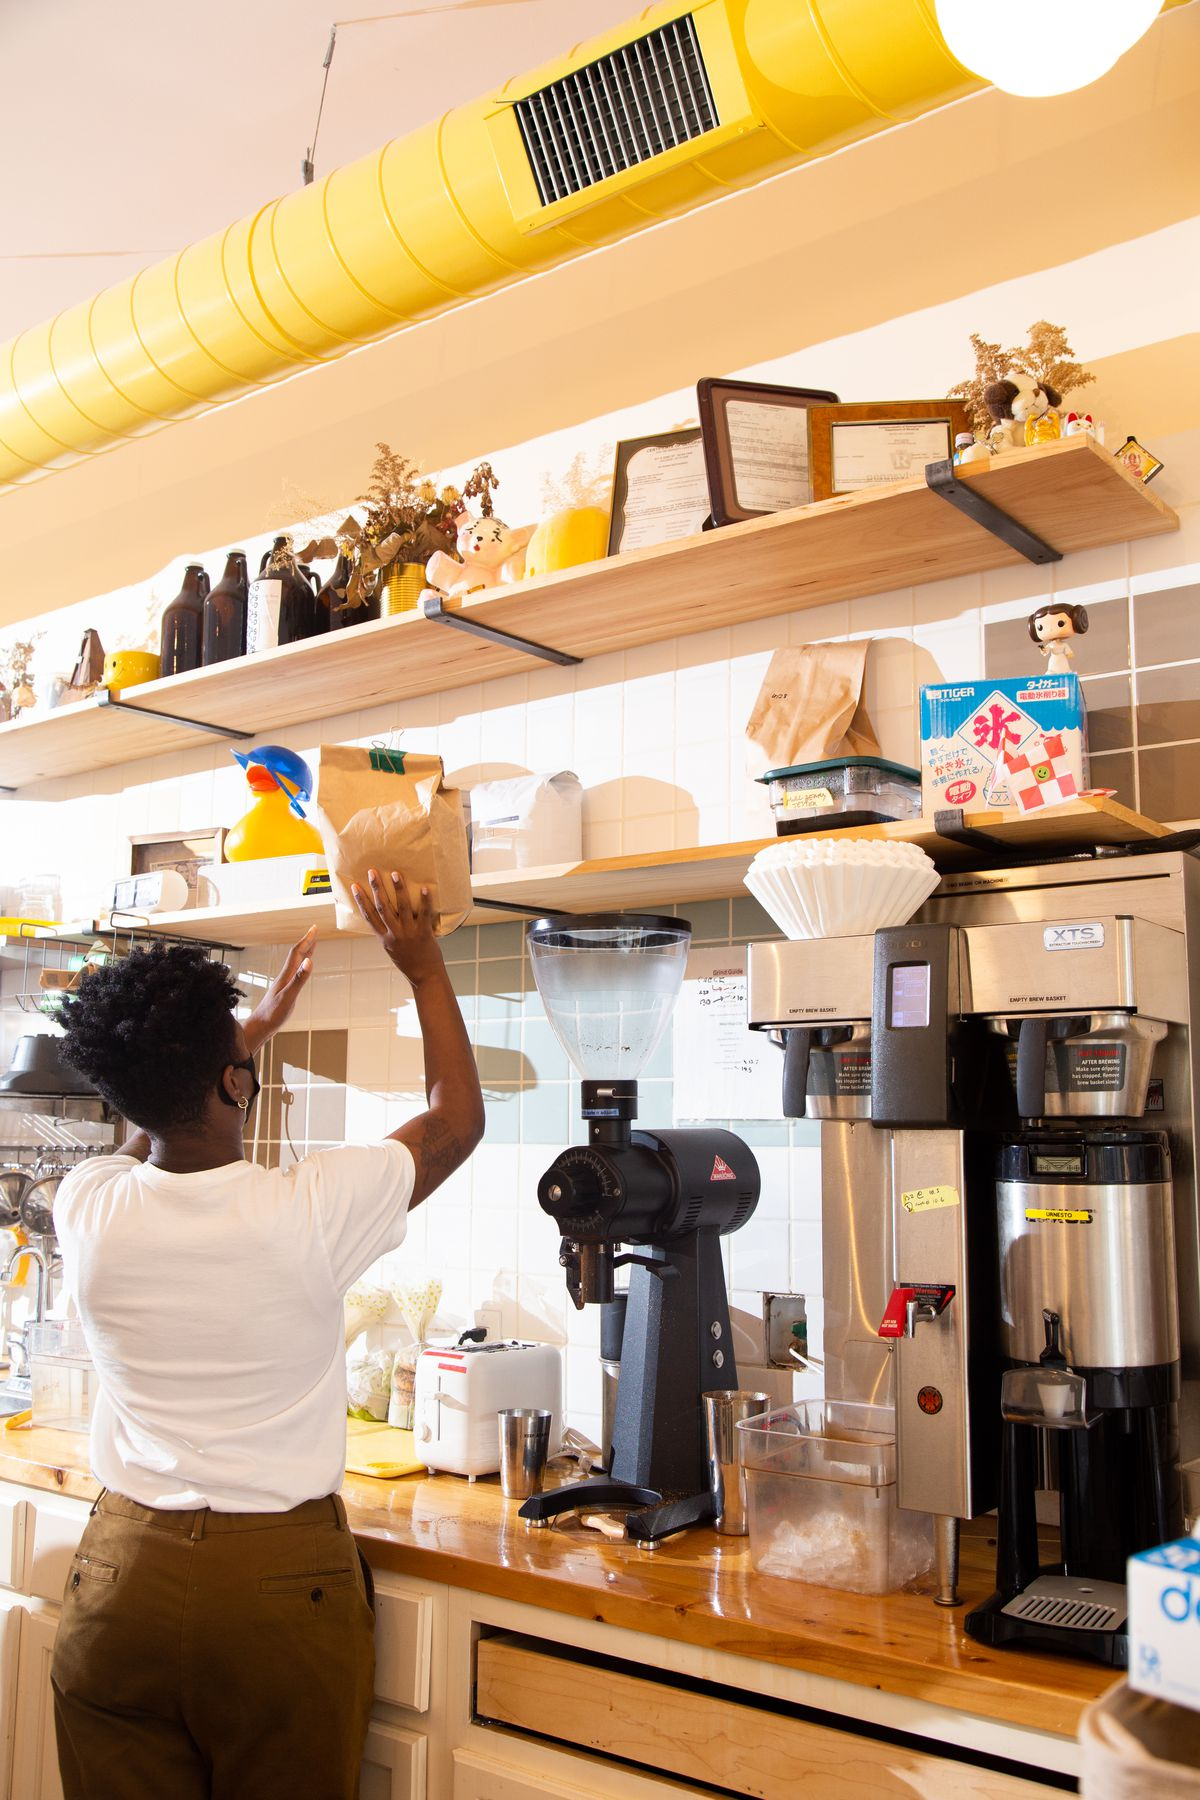 a person in a white tee shirt and brown pants lifts a brown bag onto a shelf at a coffee shop